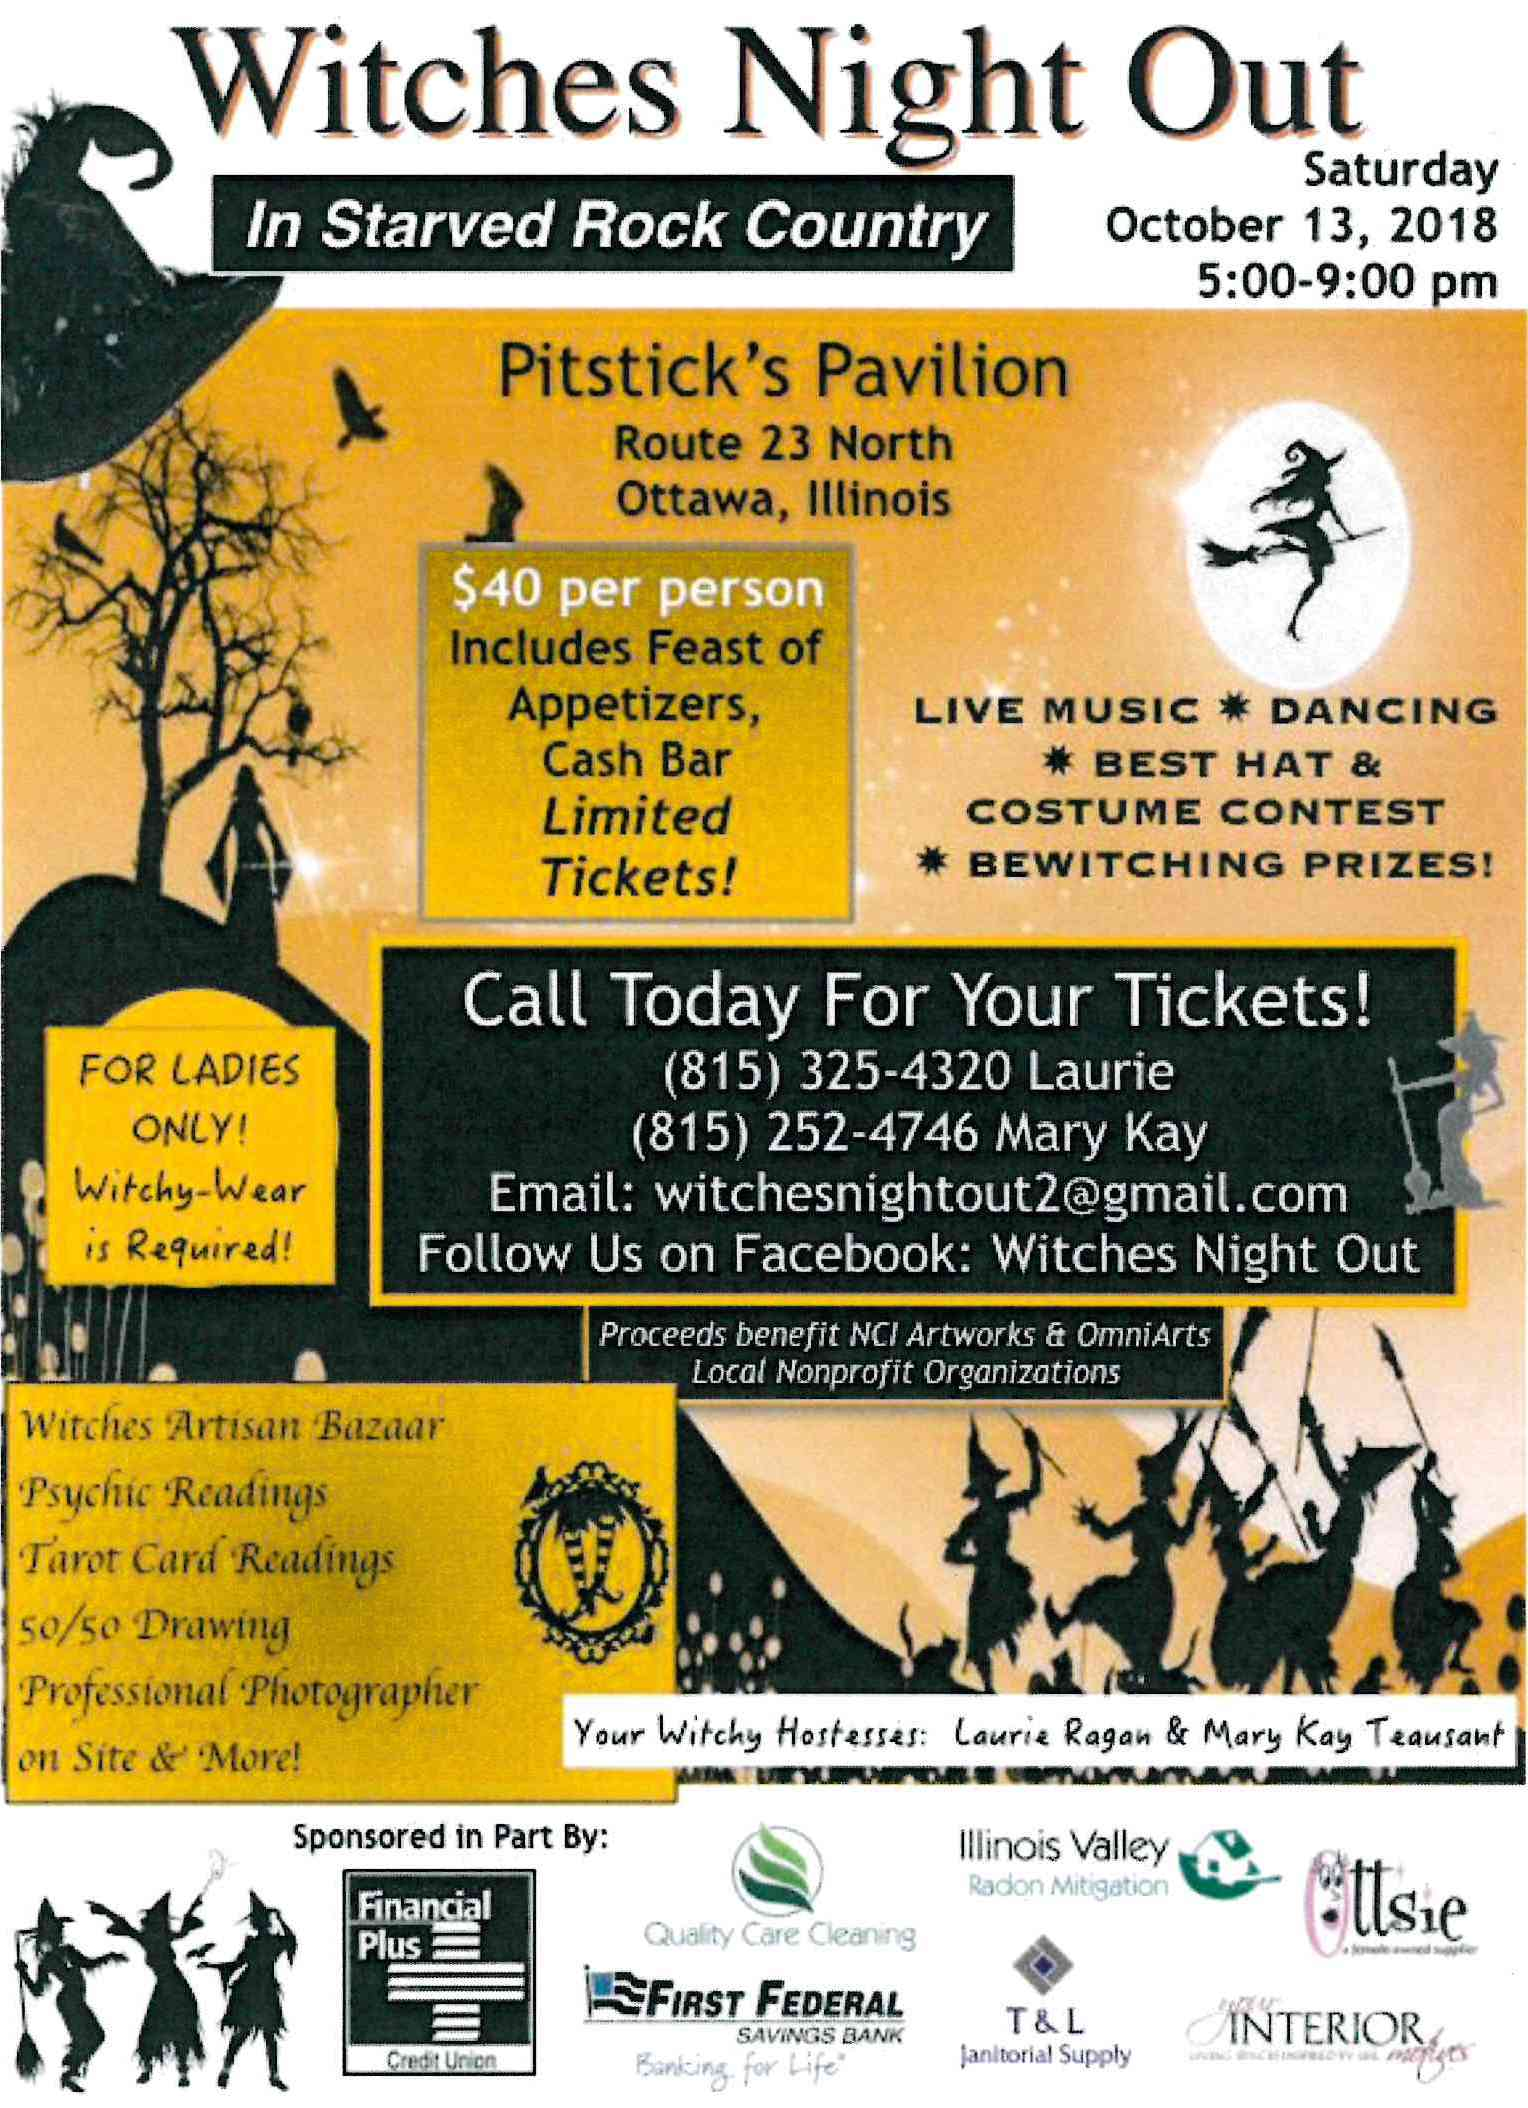 Witches Night Out Event Flyer